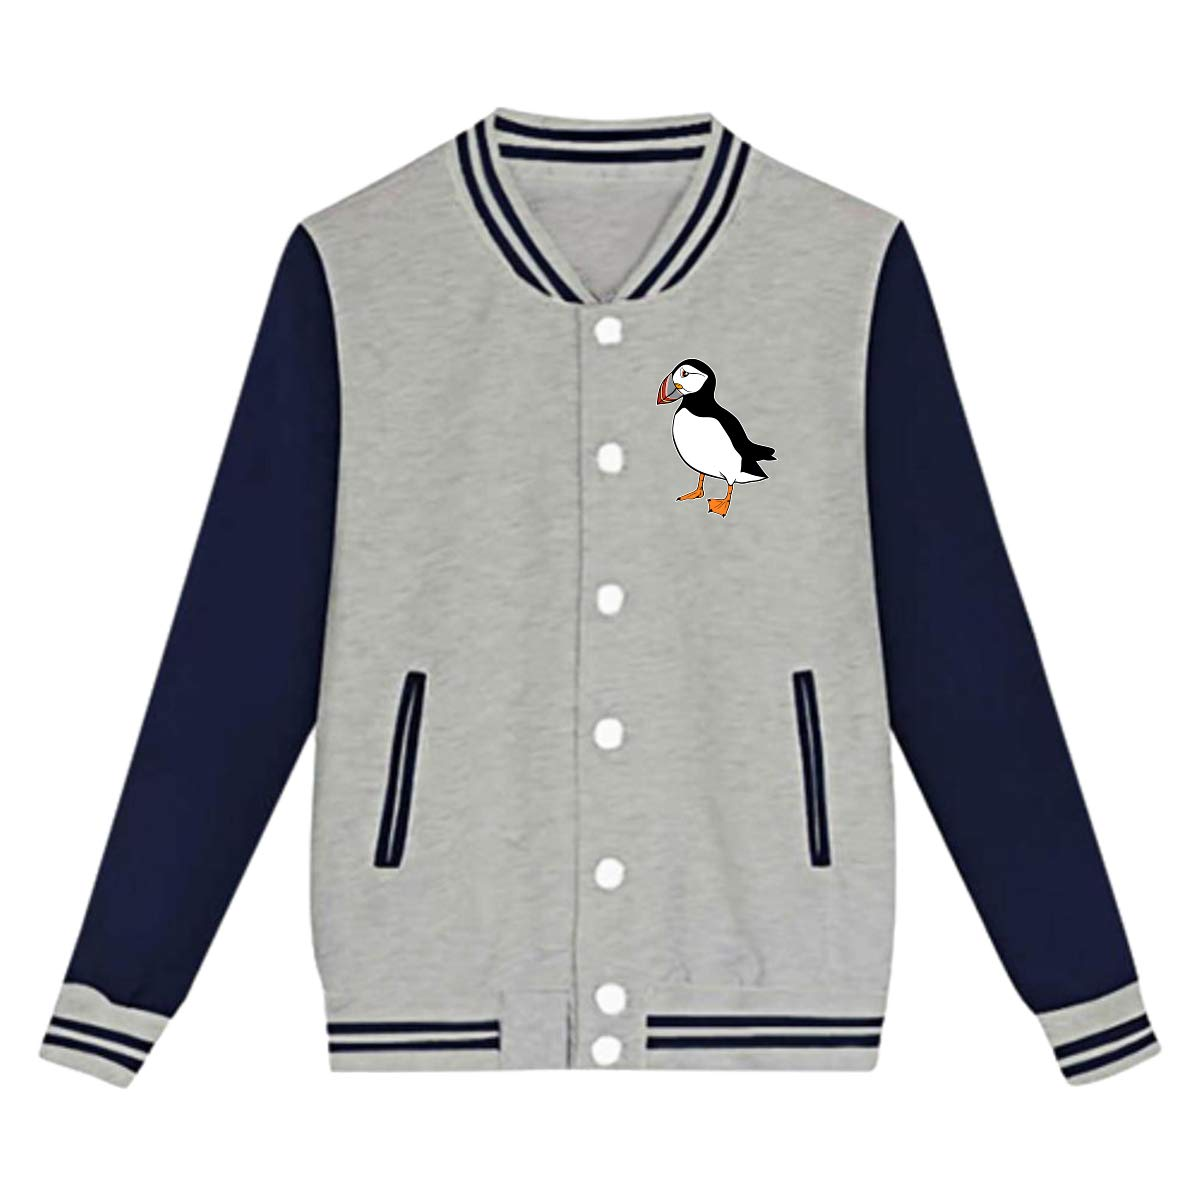 Tina TN Cute Puffin Bird Teens Boys Girl Varsity Baseball Jacket Long Sleeve Sport Baseball Uniform Jacket Coat Sweater Black